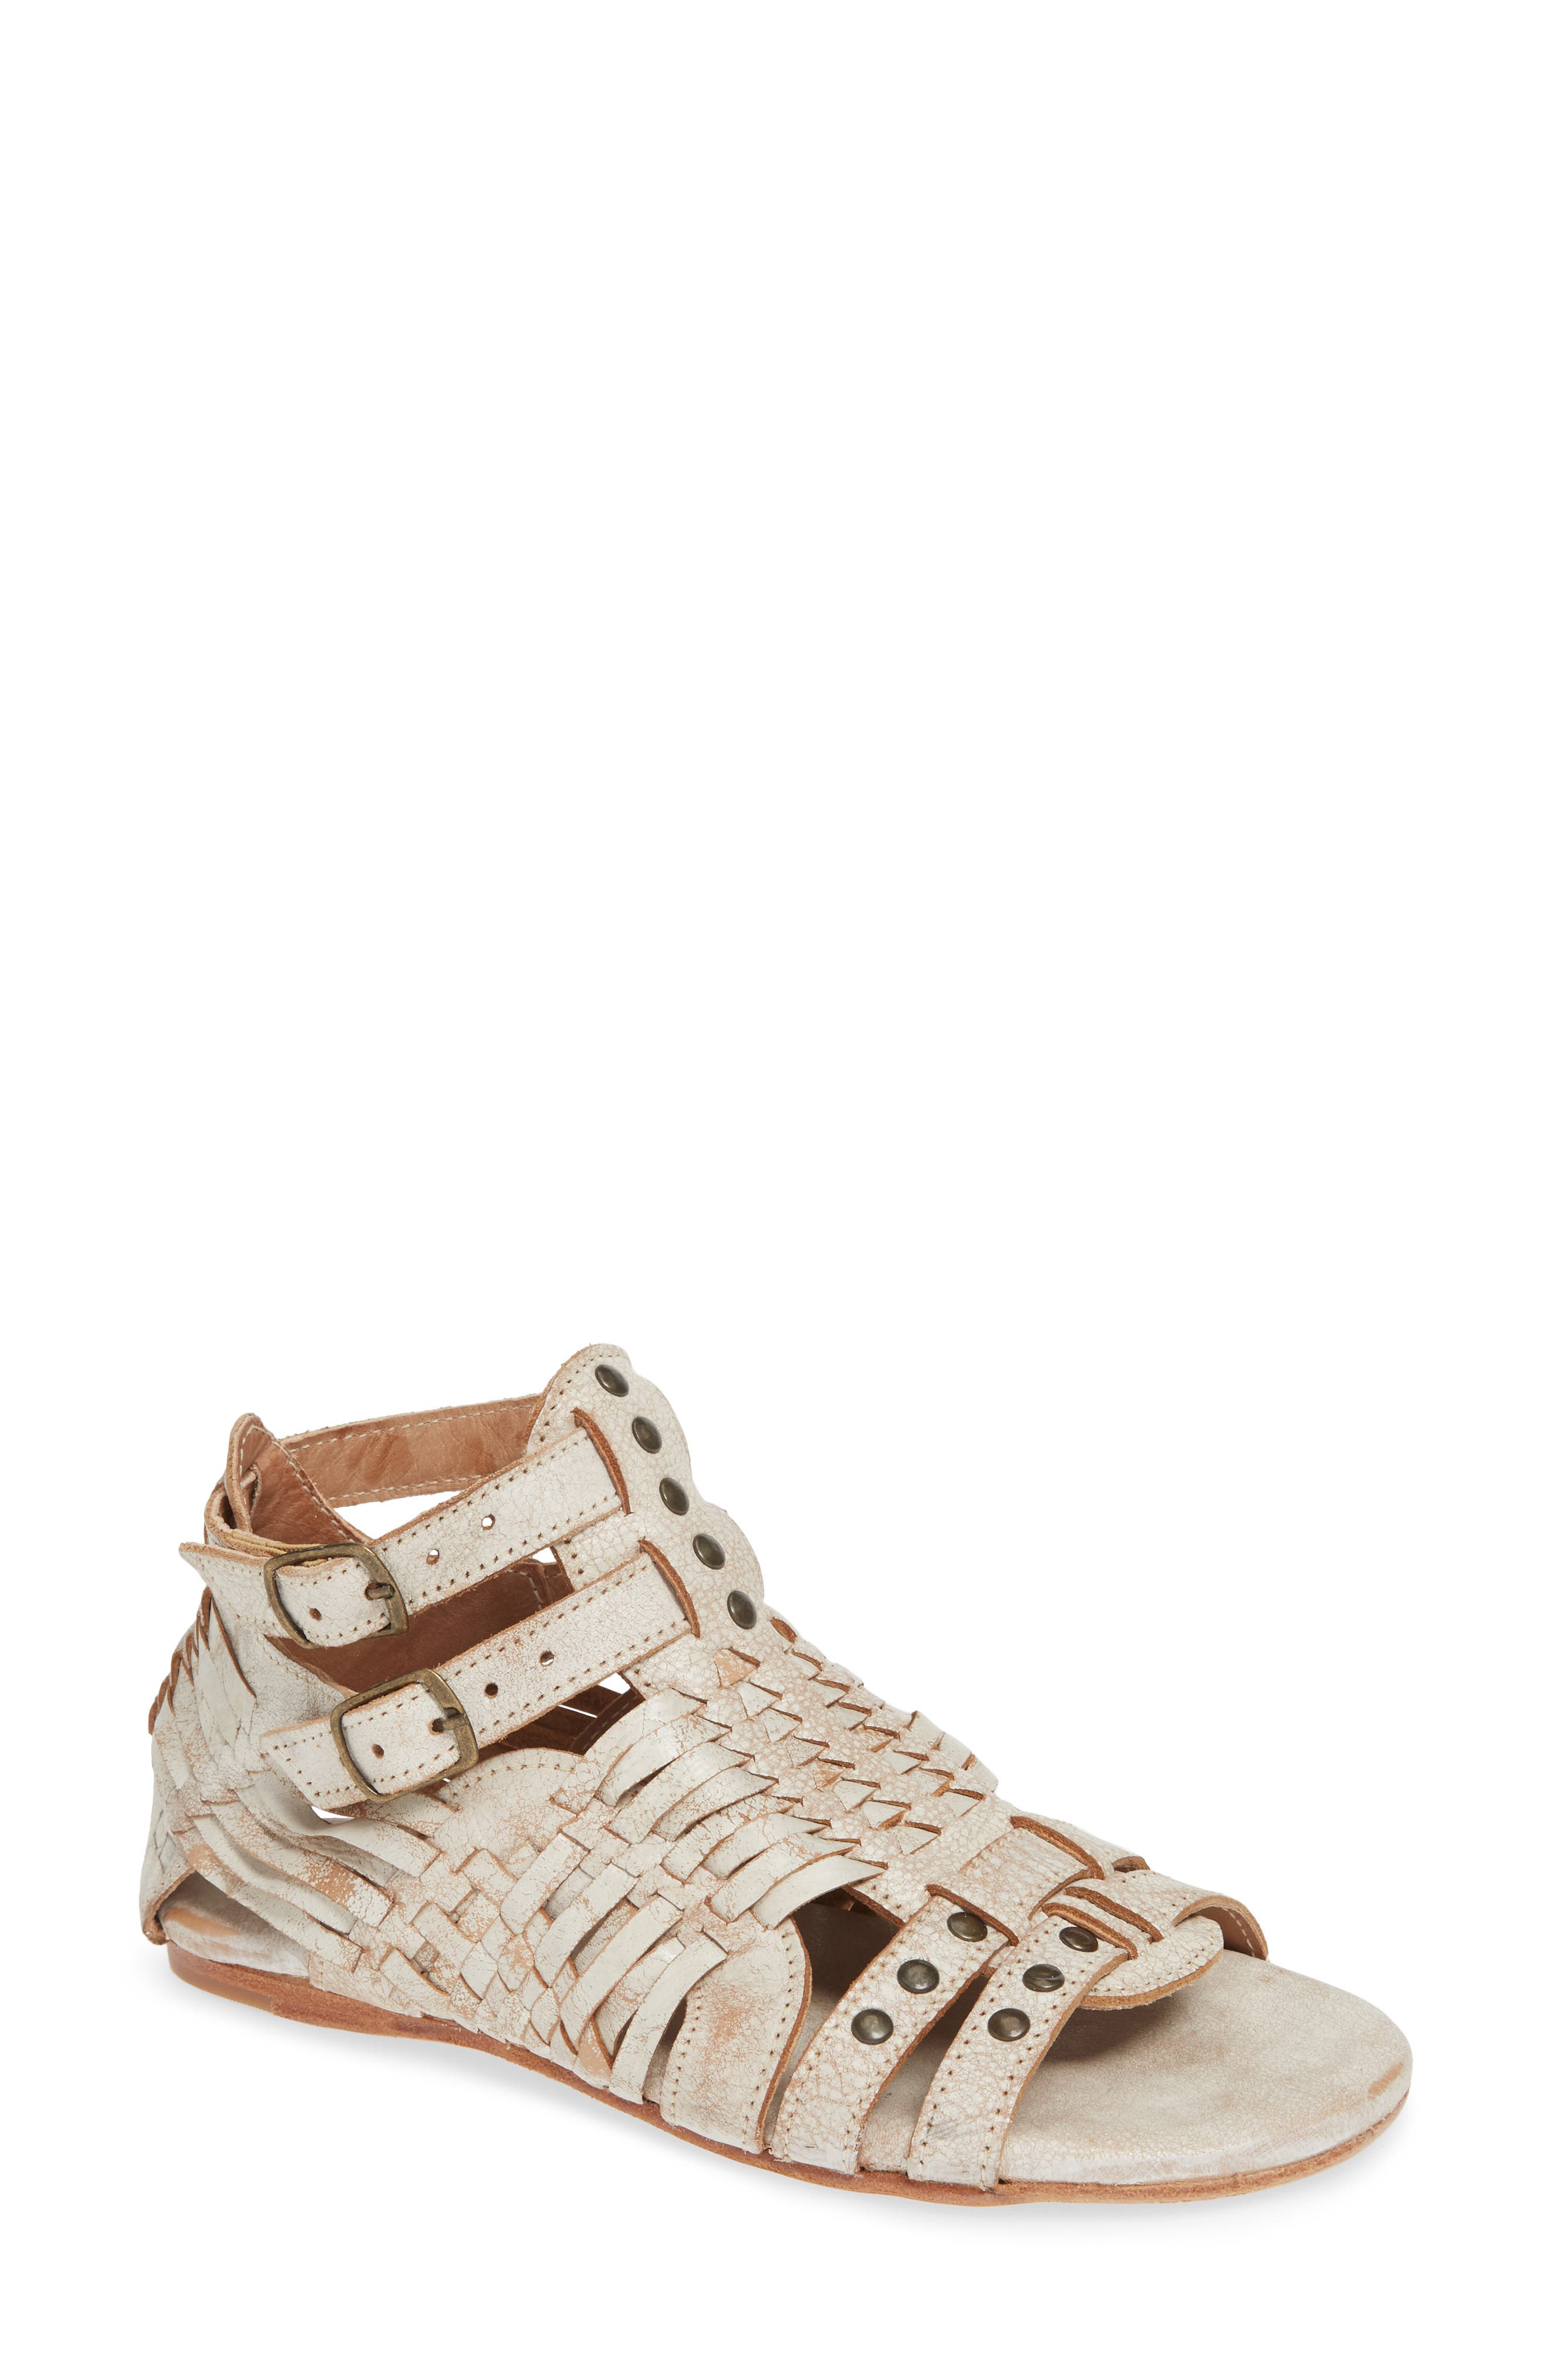 Claire Woven Gladiator Sandal